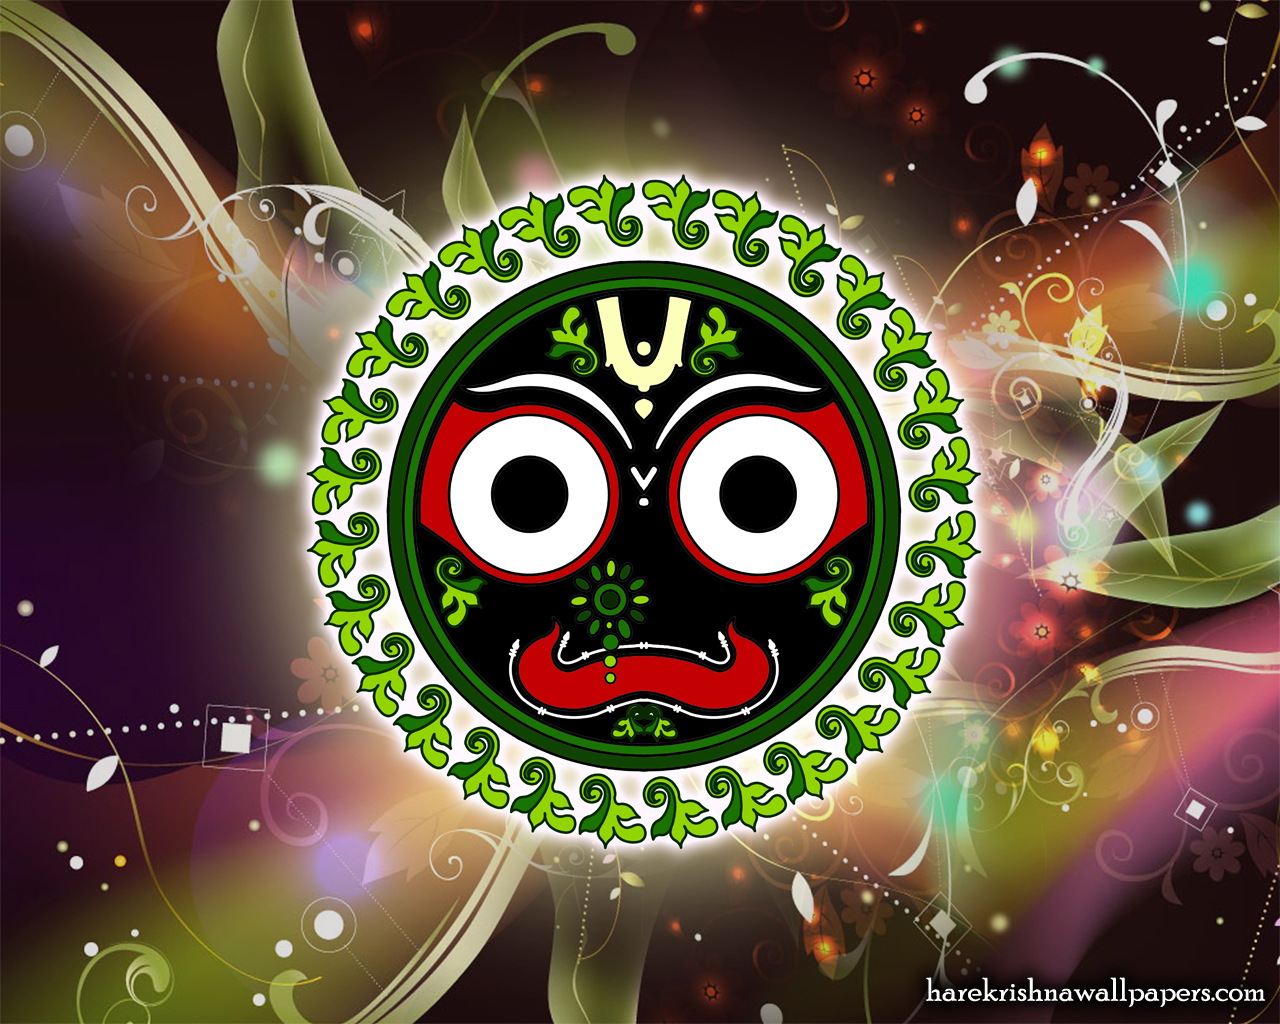 God Jagannath Ji HD Wallpapers for free download